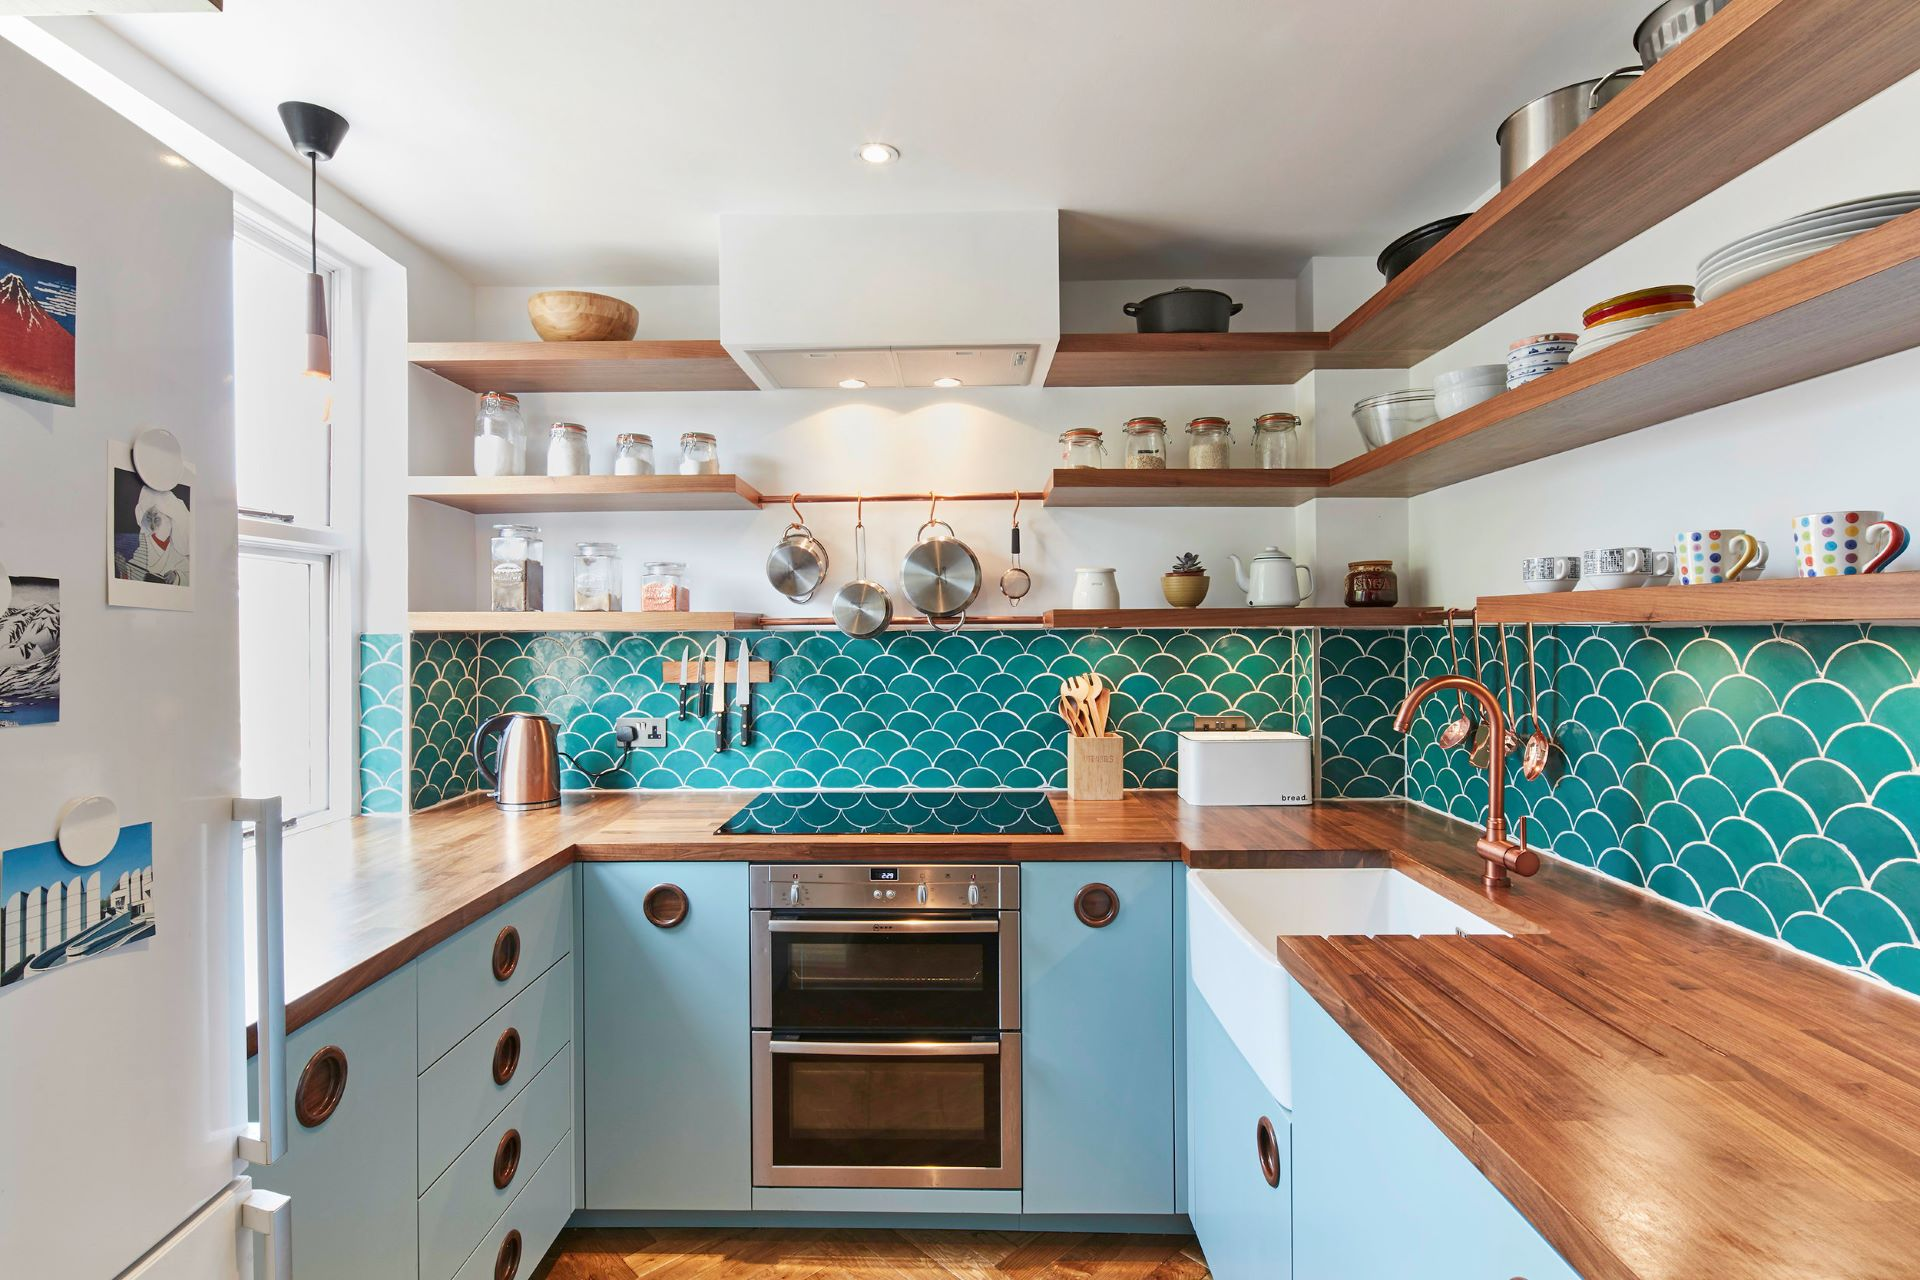 Blue themed MCM kitchen with wooden countertop and shelves stocked with dinnerware